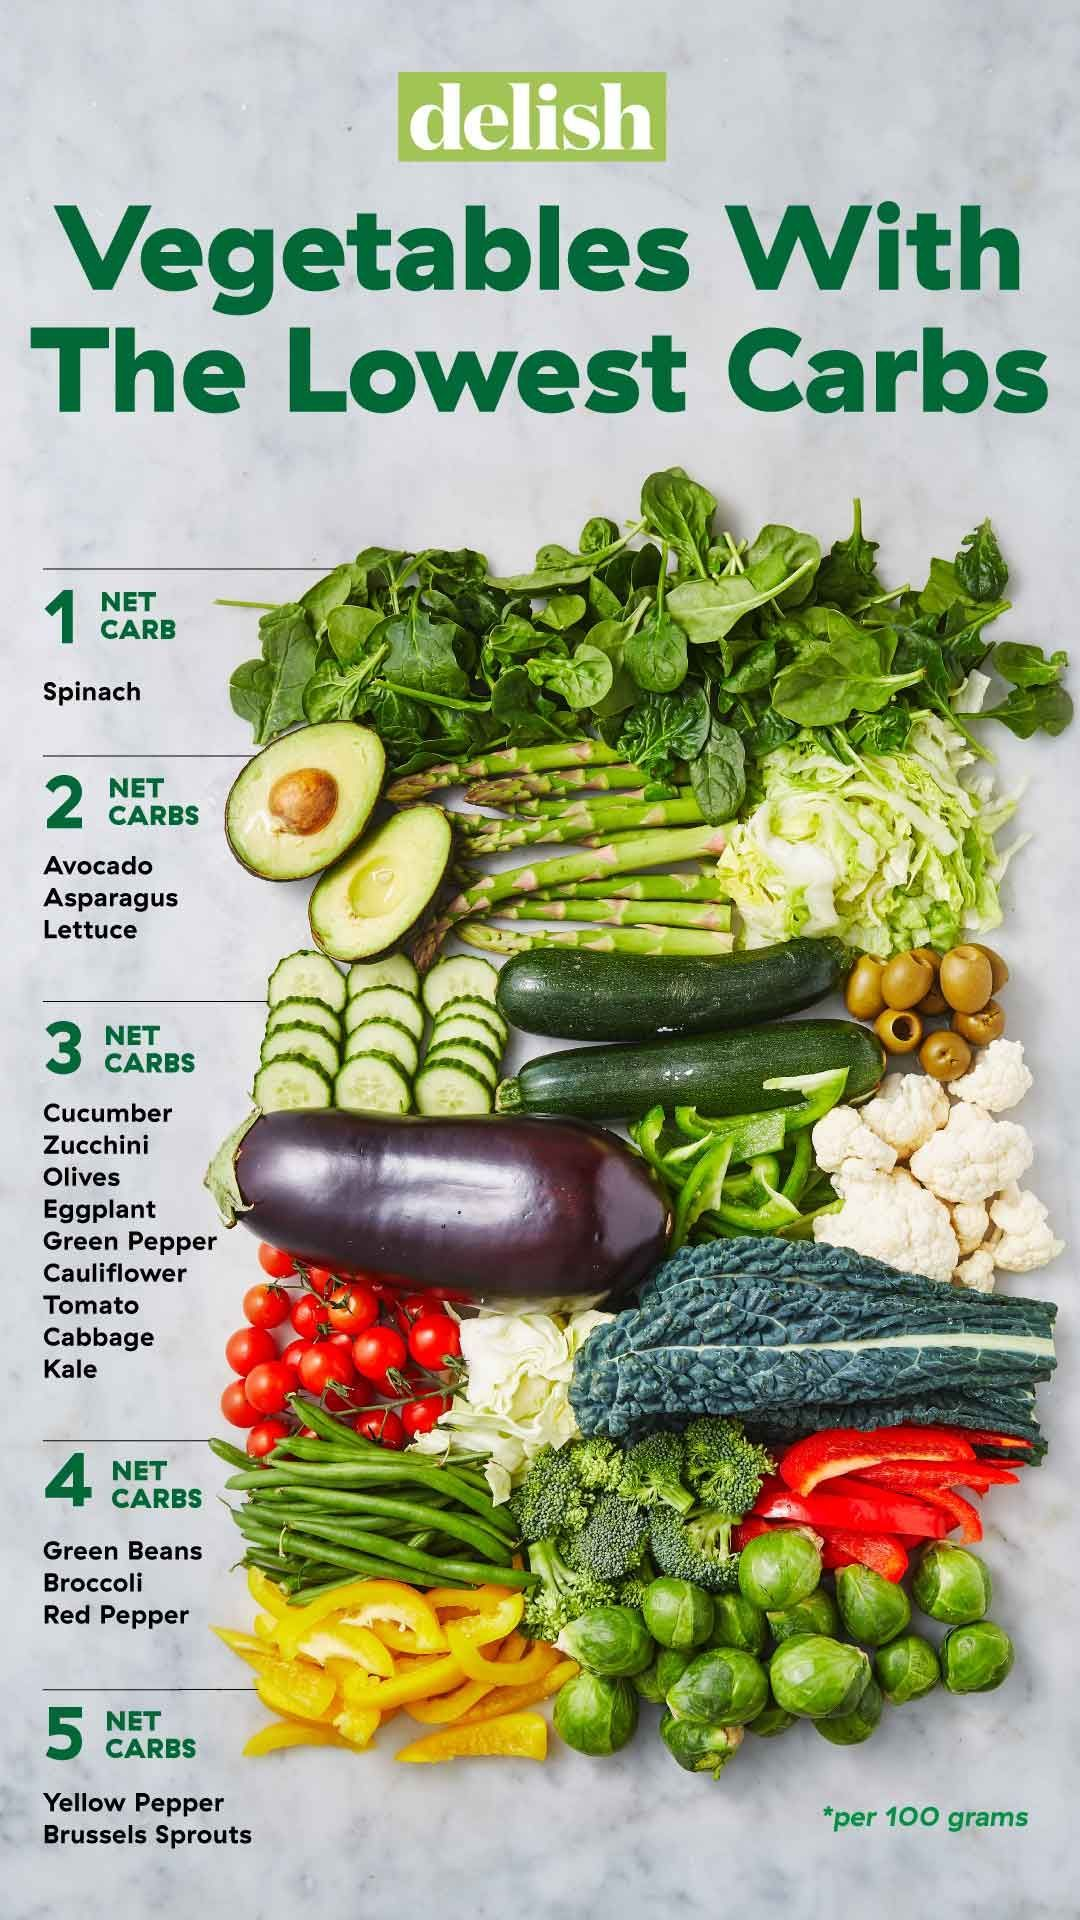 Psa You Can Eat So Many Vegetables On The Keto Diet Low Carb Veggies Low Carb Vegetables Low Carb Fruit